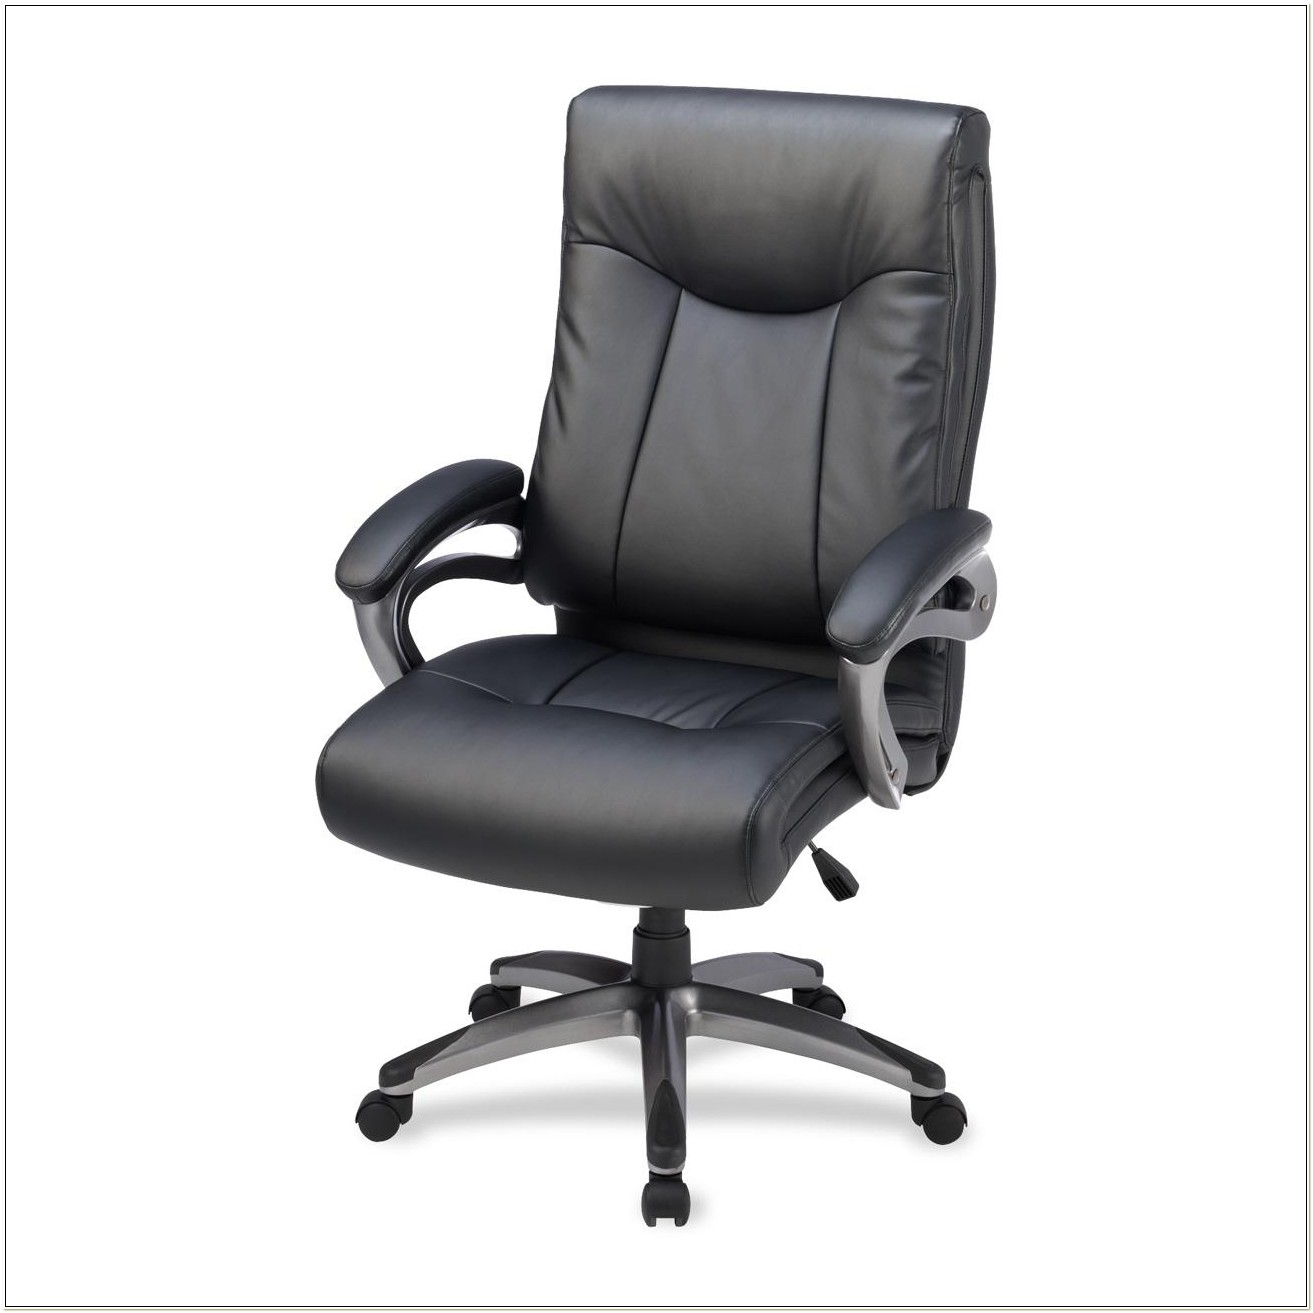 Lorell Executive High Back Chair Instructions